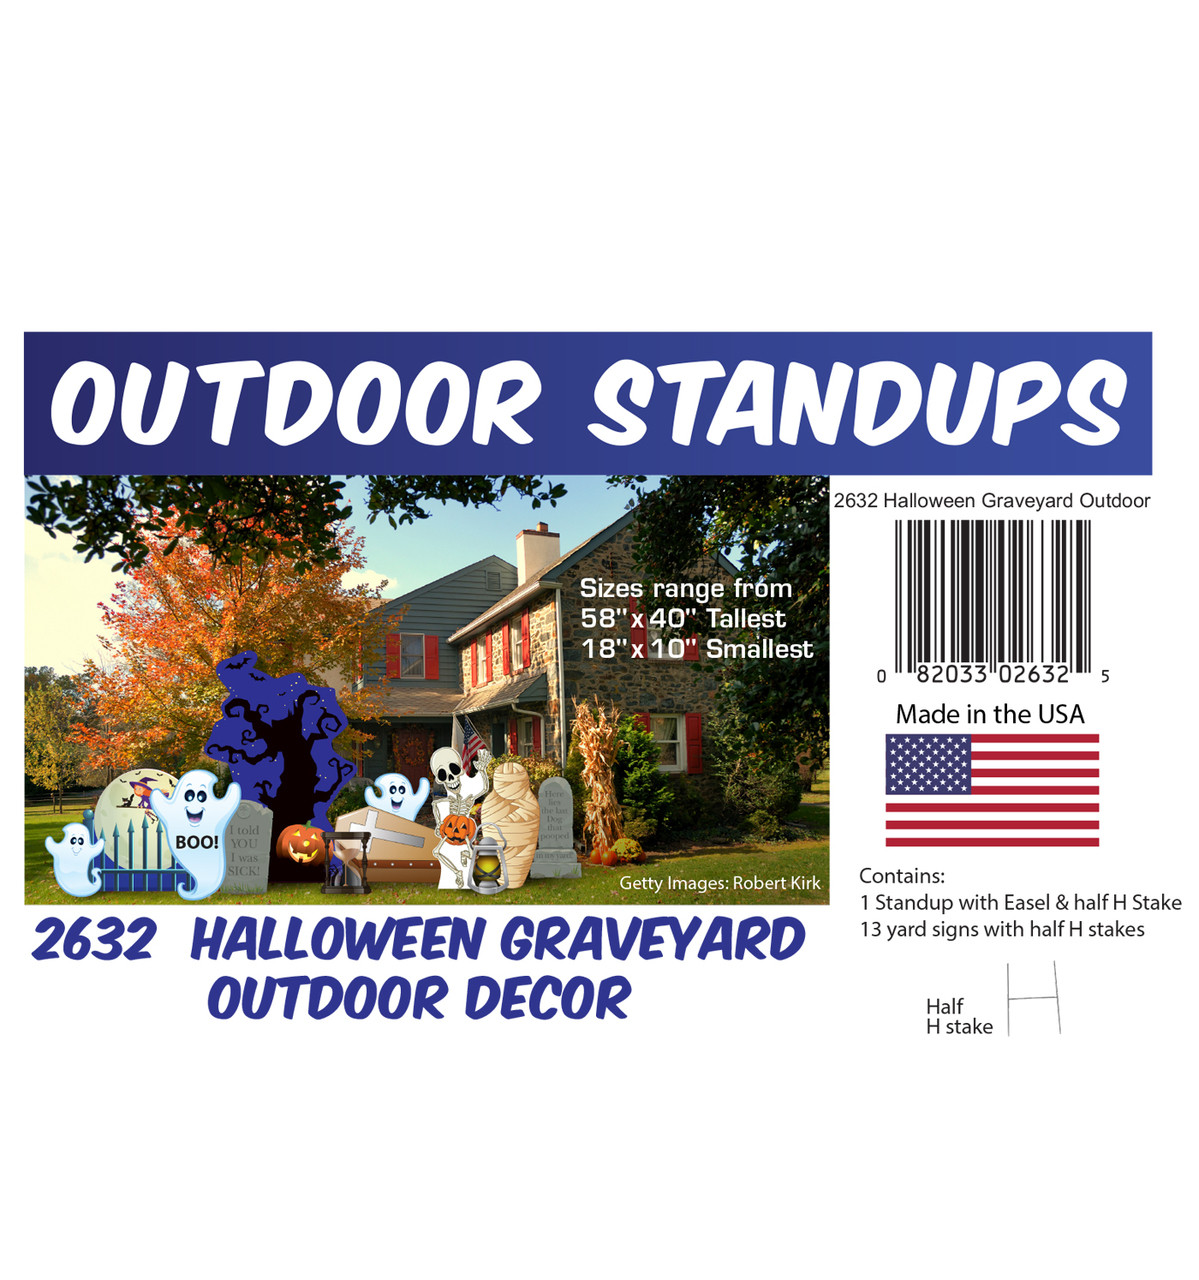 Halloween Graveyard Outdoor Decor with setting, dimensions and list of items included.